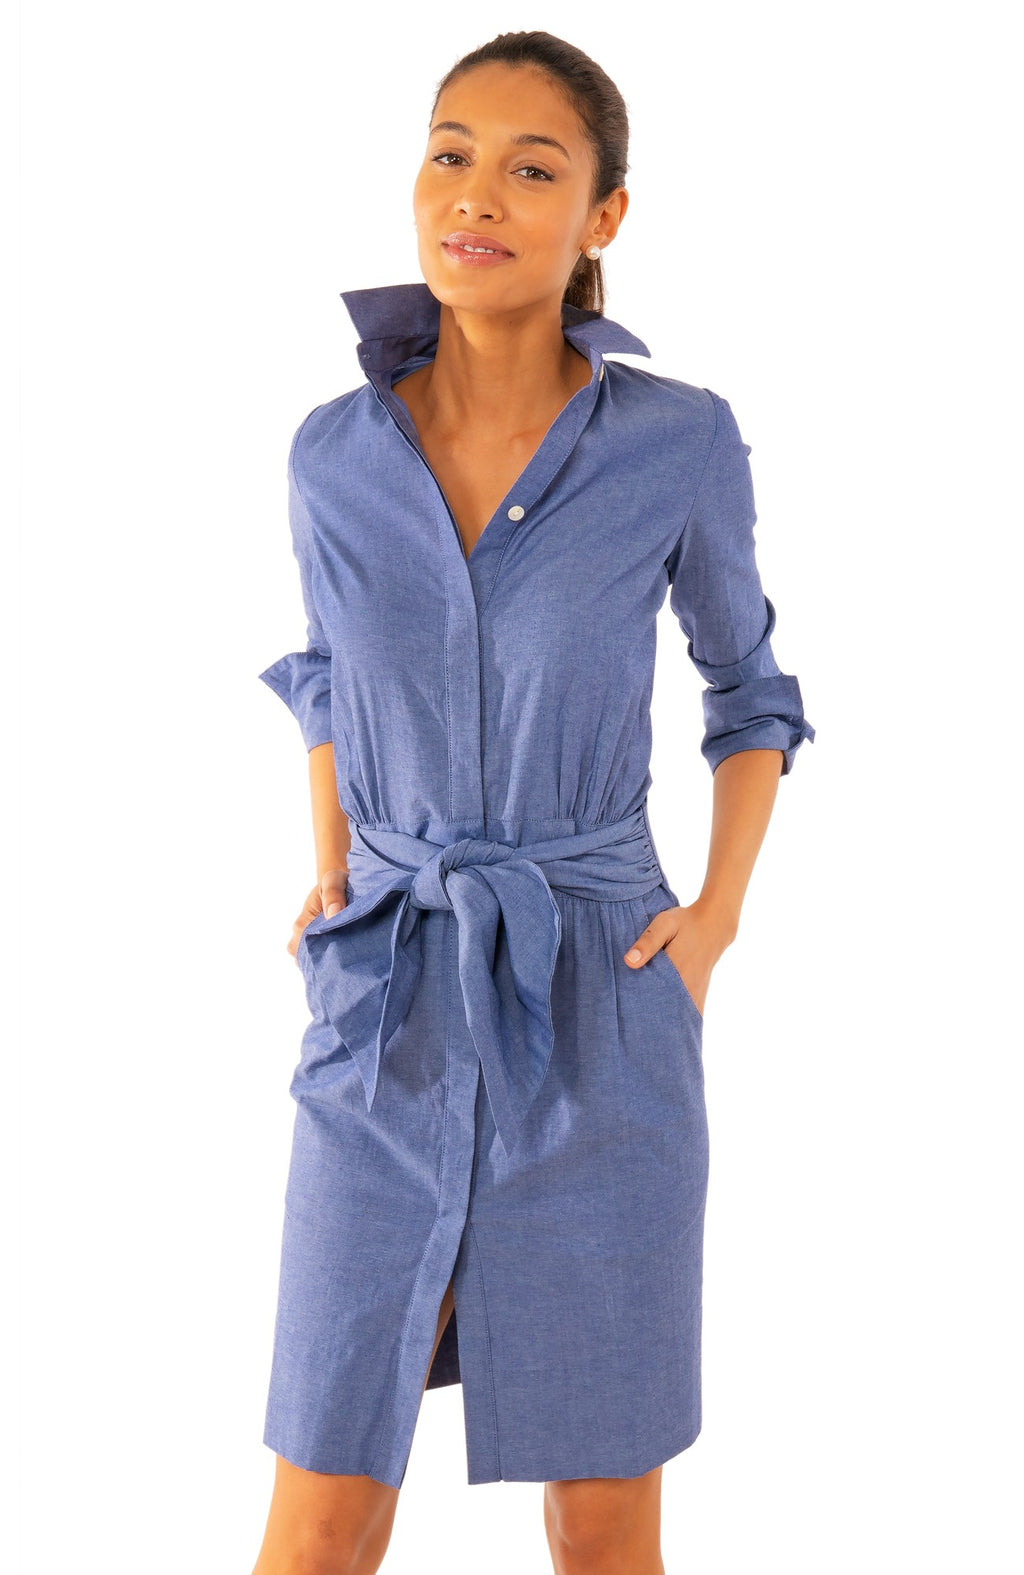 GRETCHEN SCOTT BREEZY BLOUSAON CHAMBRAY DRESS